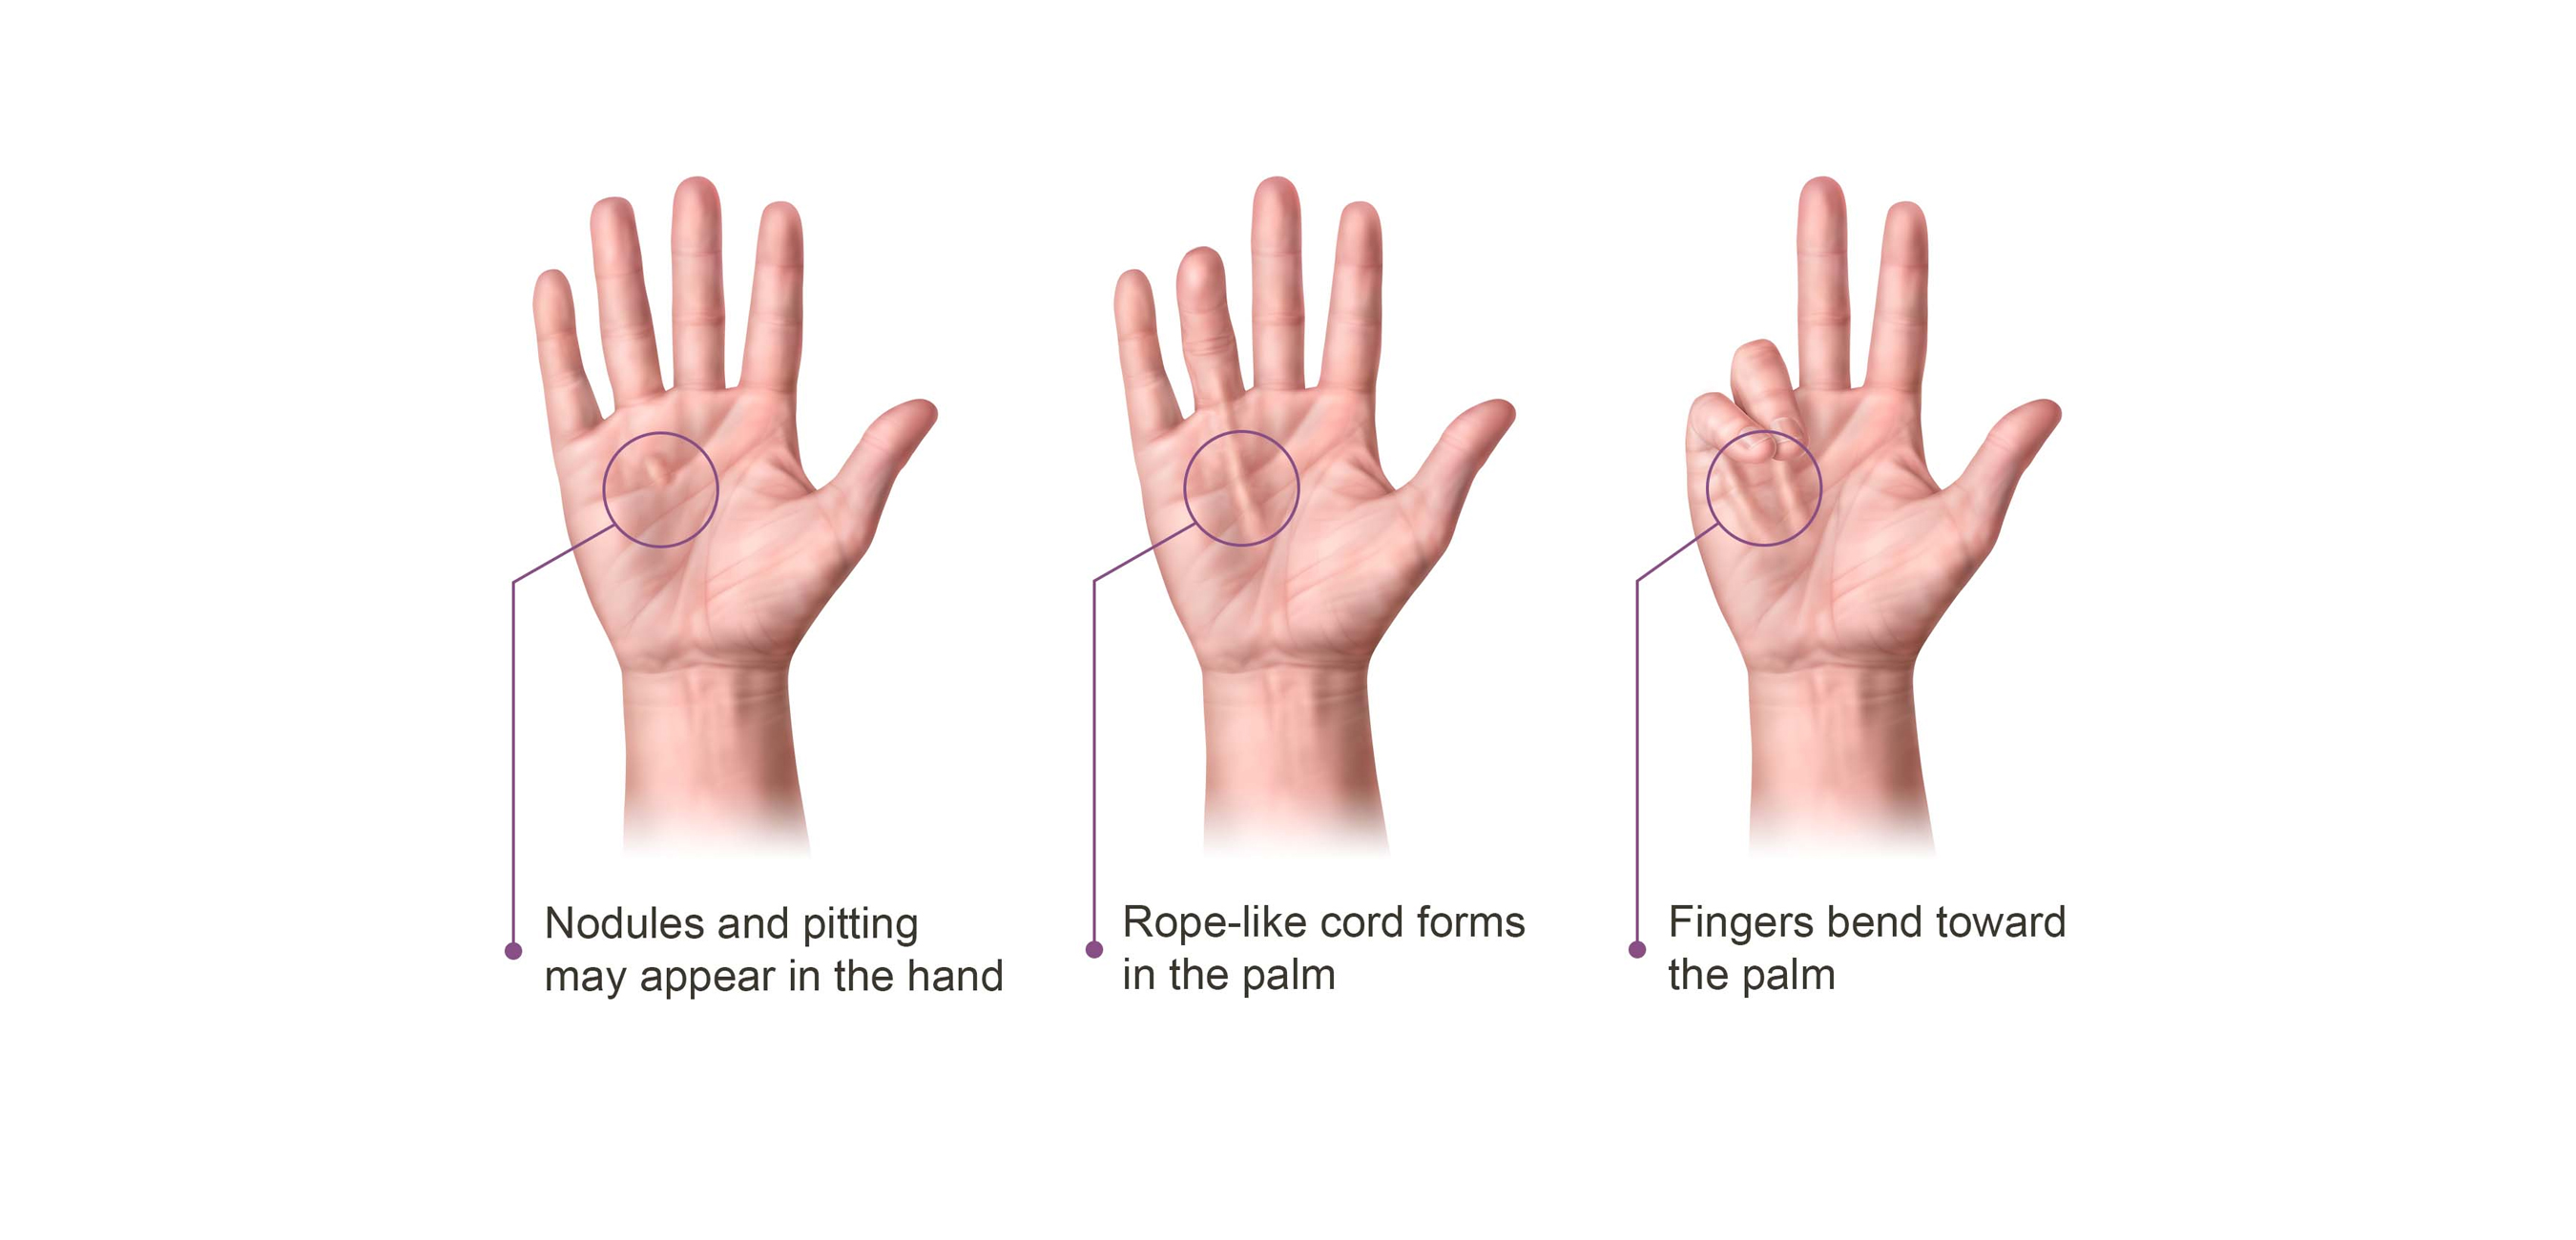 Dupuytren's Contracture Progression